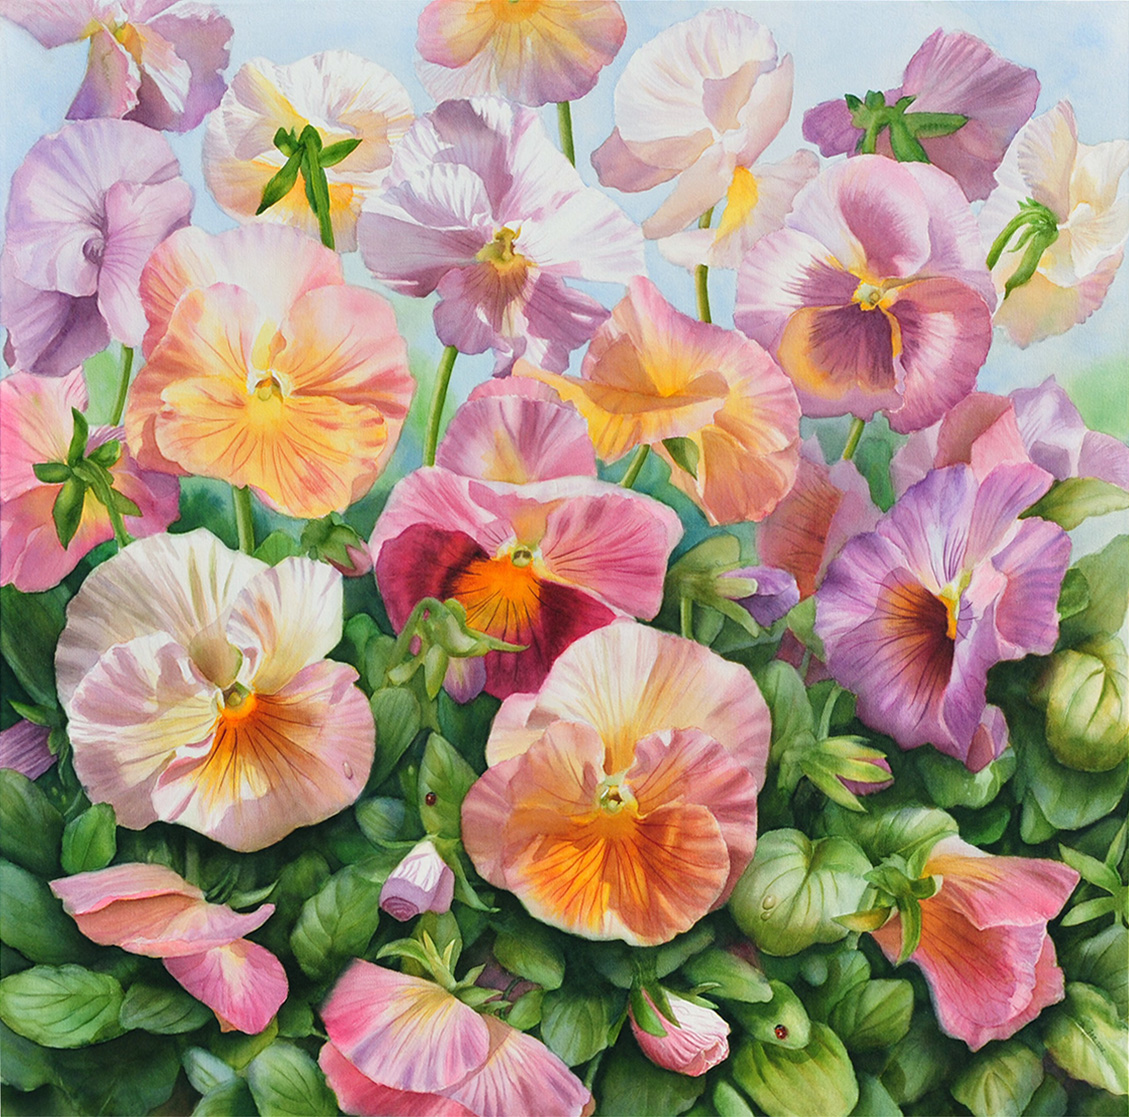 Watercolor Flowers - Pansies Flowers in Watercolor by Doris Joa